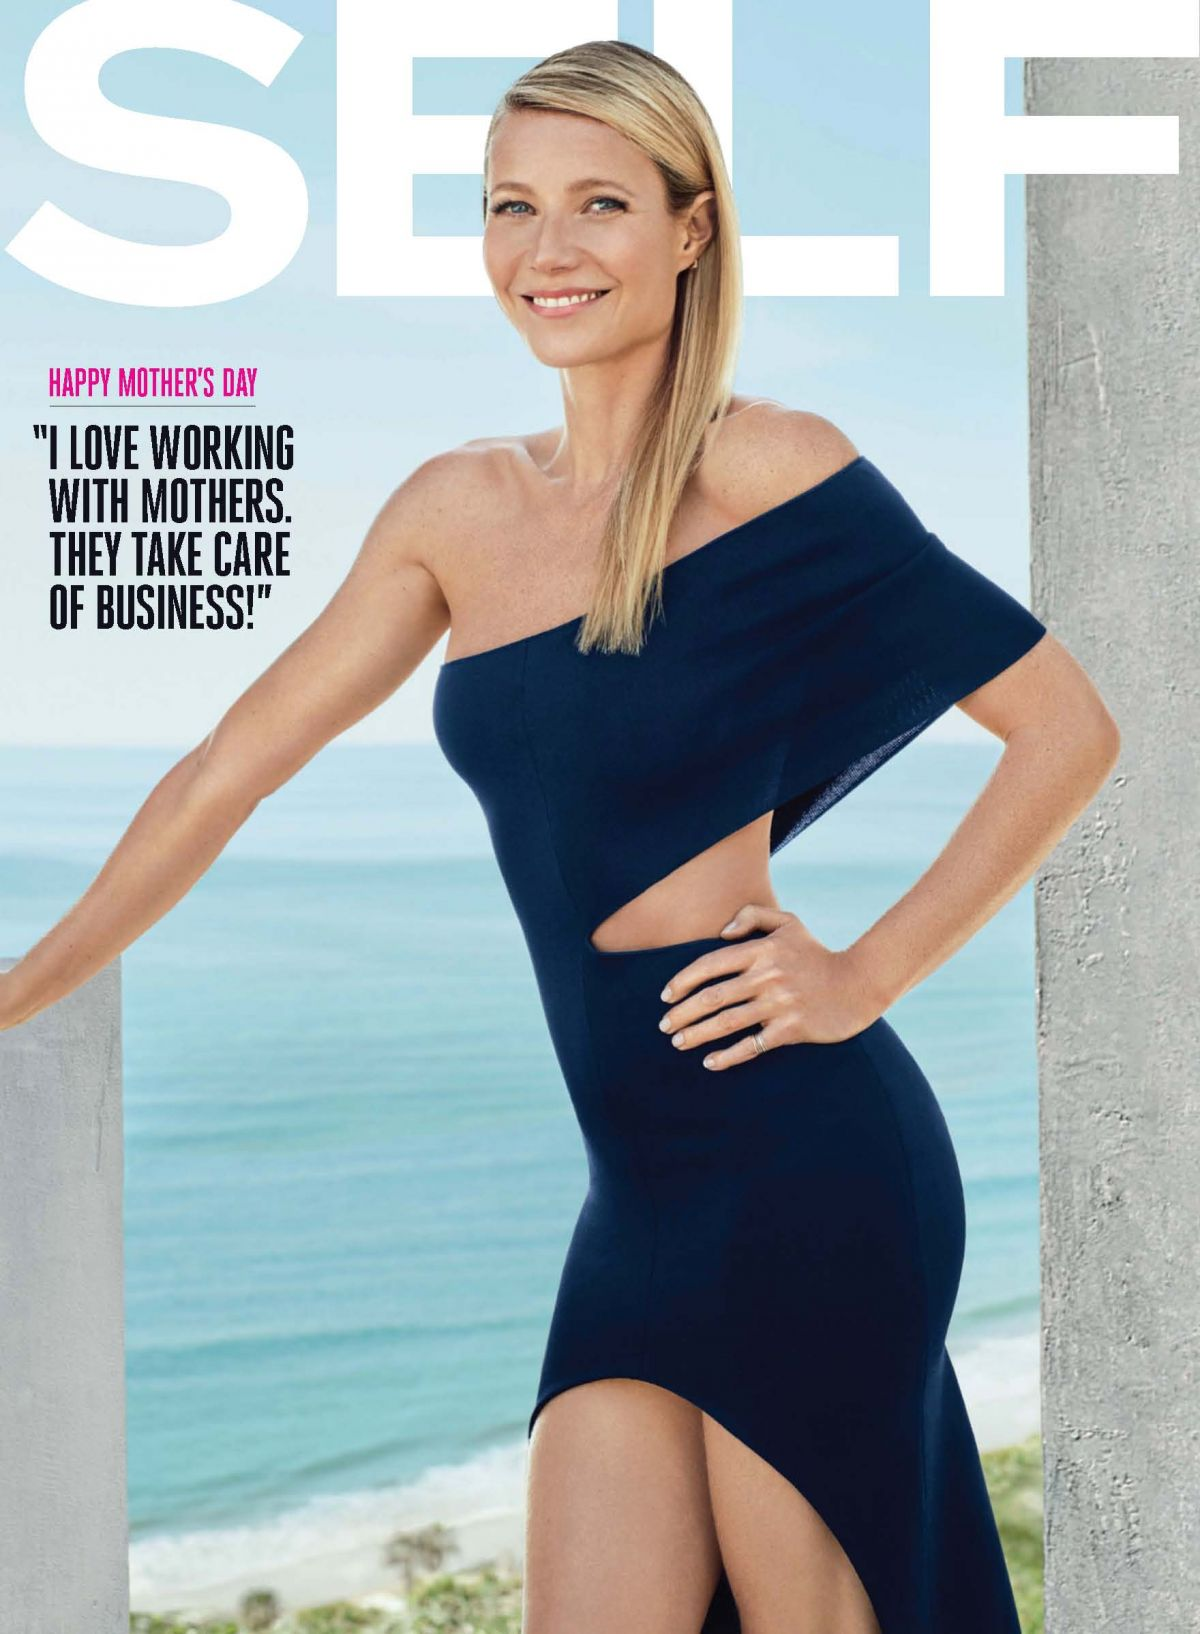 GWYNETH PALTROW in Self Magazine, May 2016 Issue